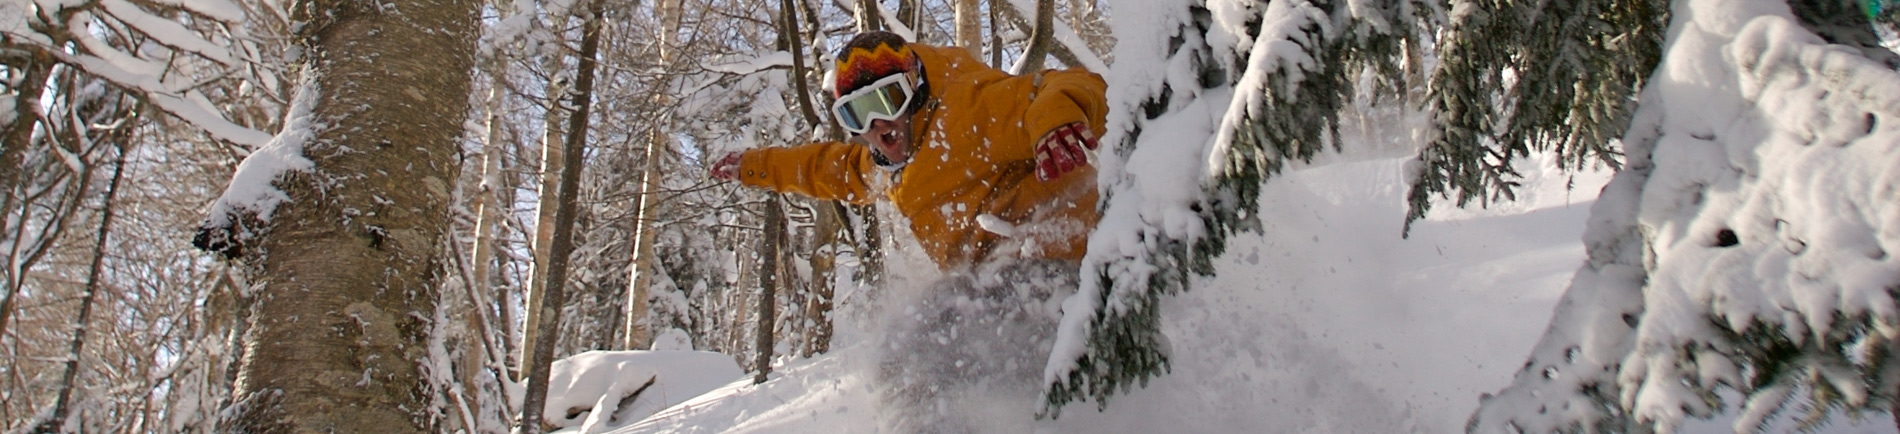 Snowboarder at Killington